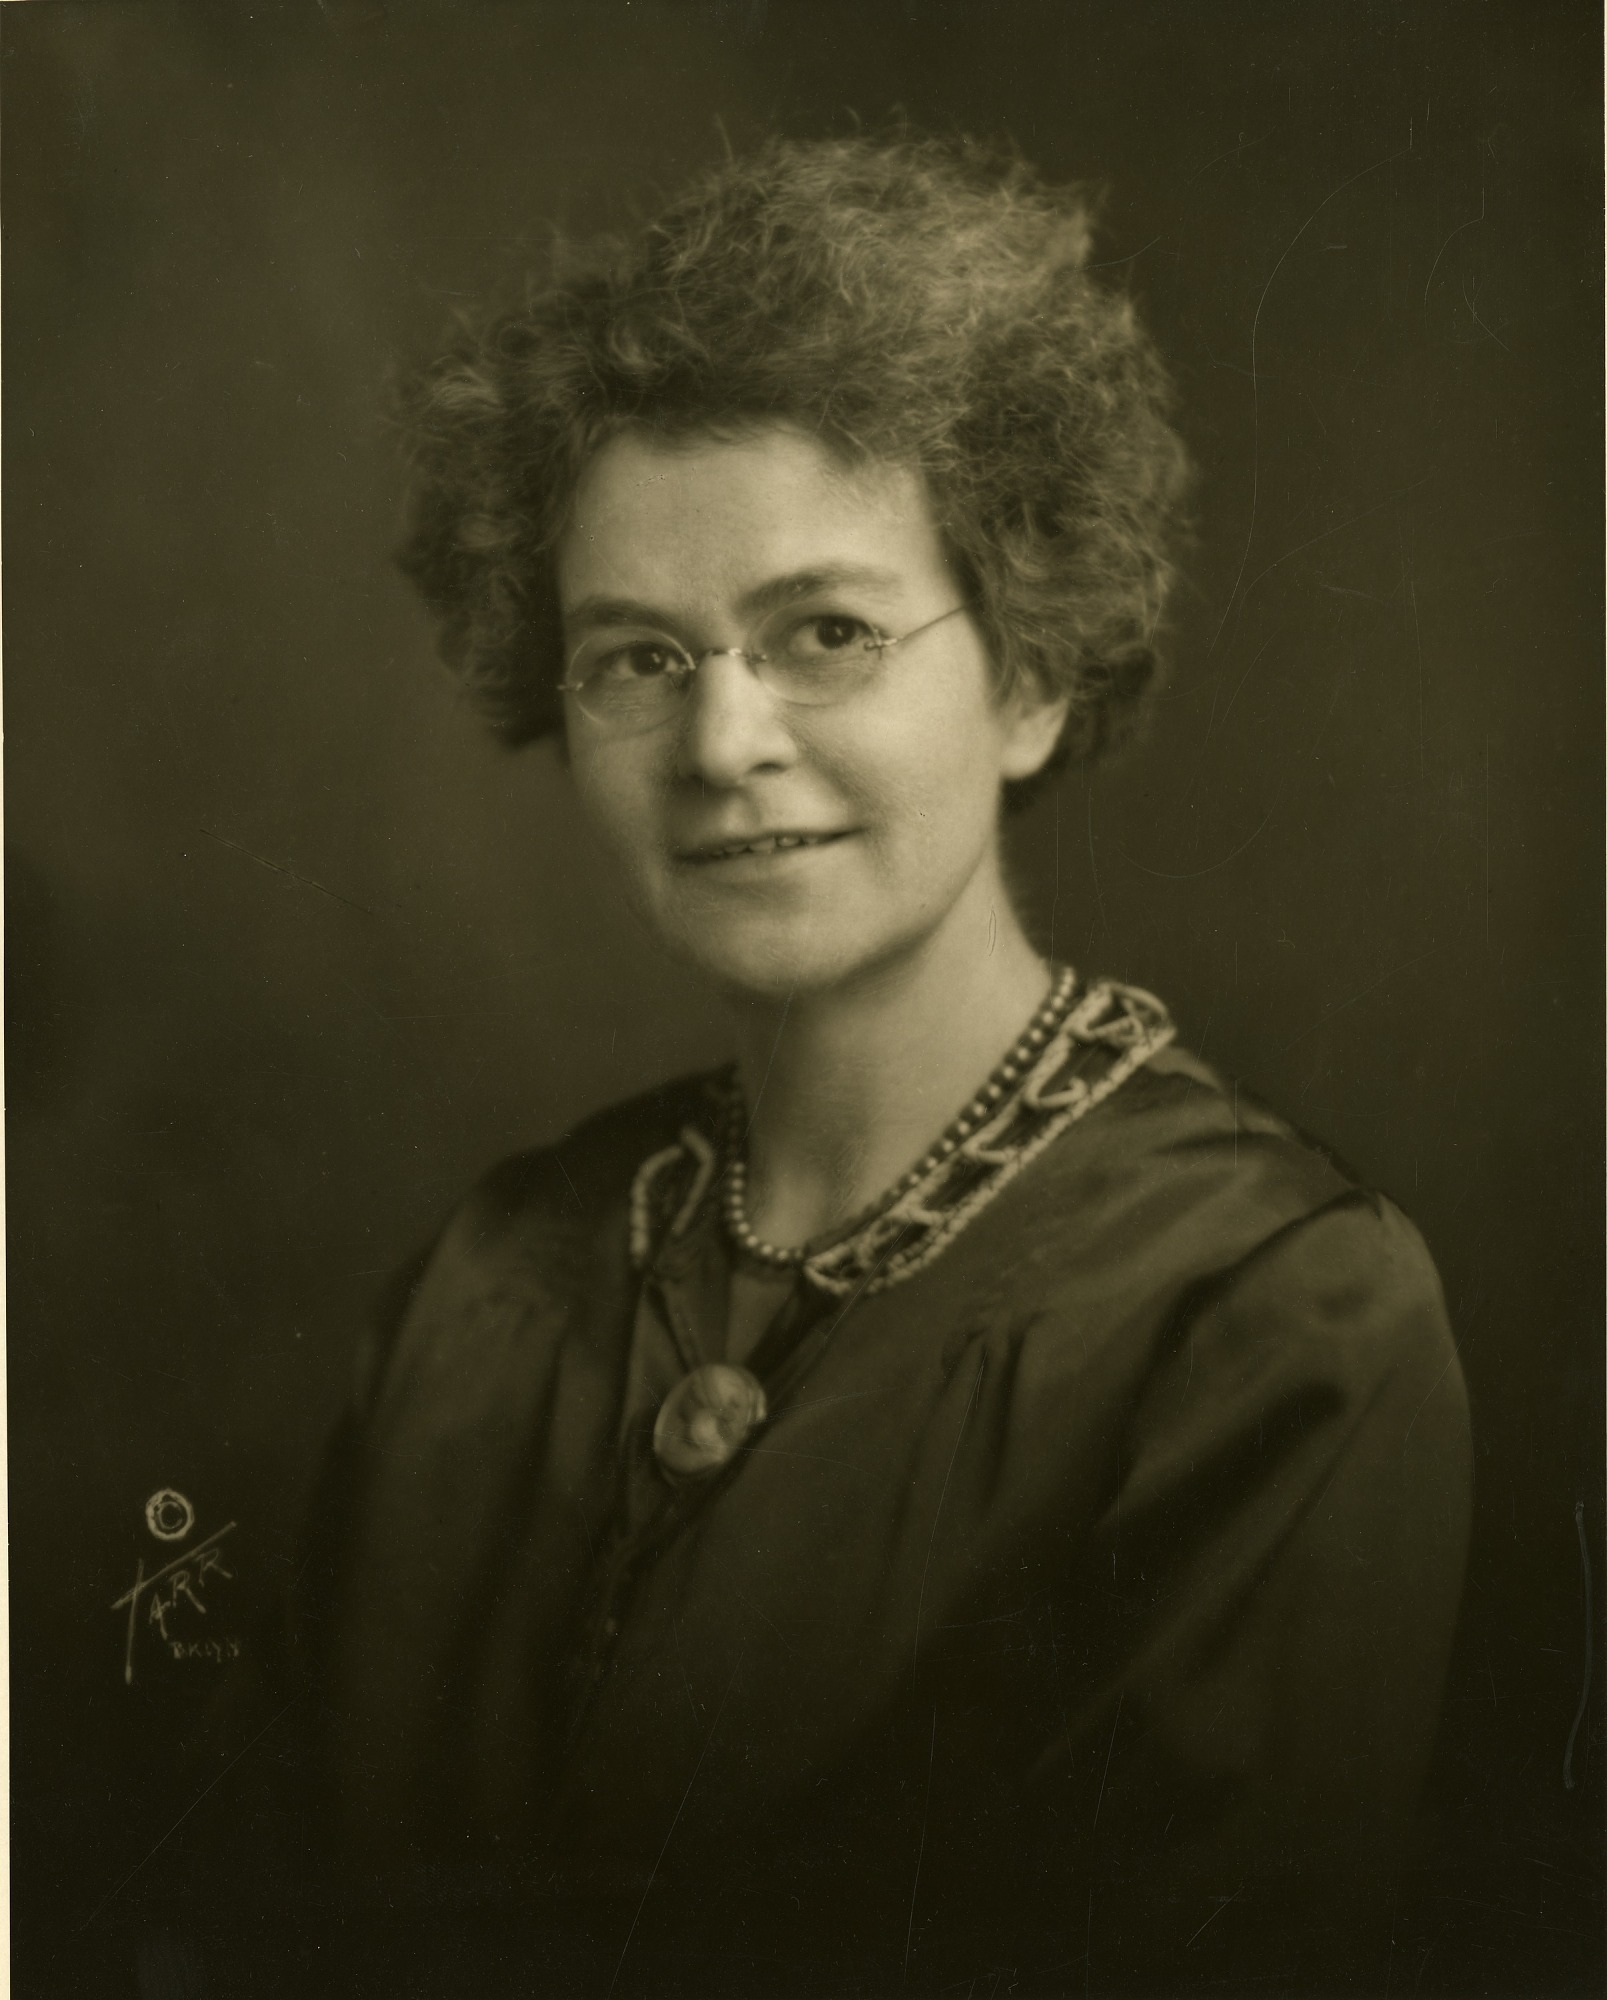 Ida May Mellen (1877-1970), Smithsonian Institution Archives, SIA Acc. 90-105 [SIA2008-5994].